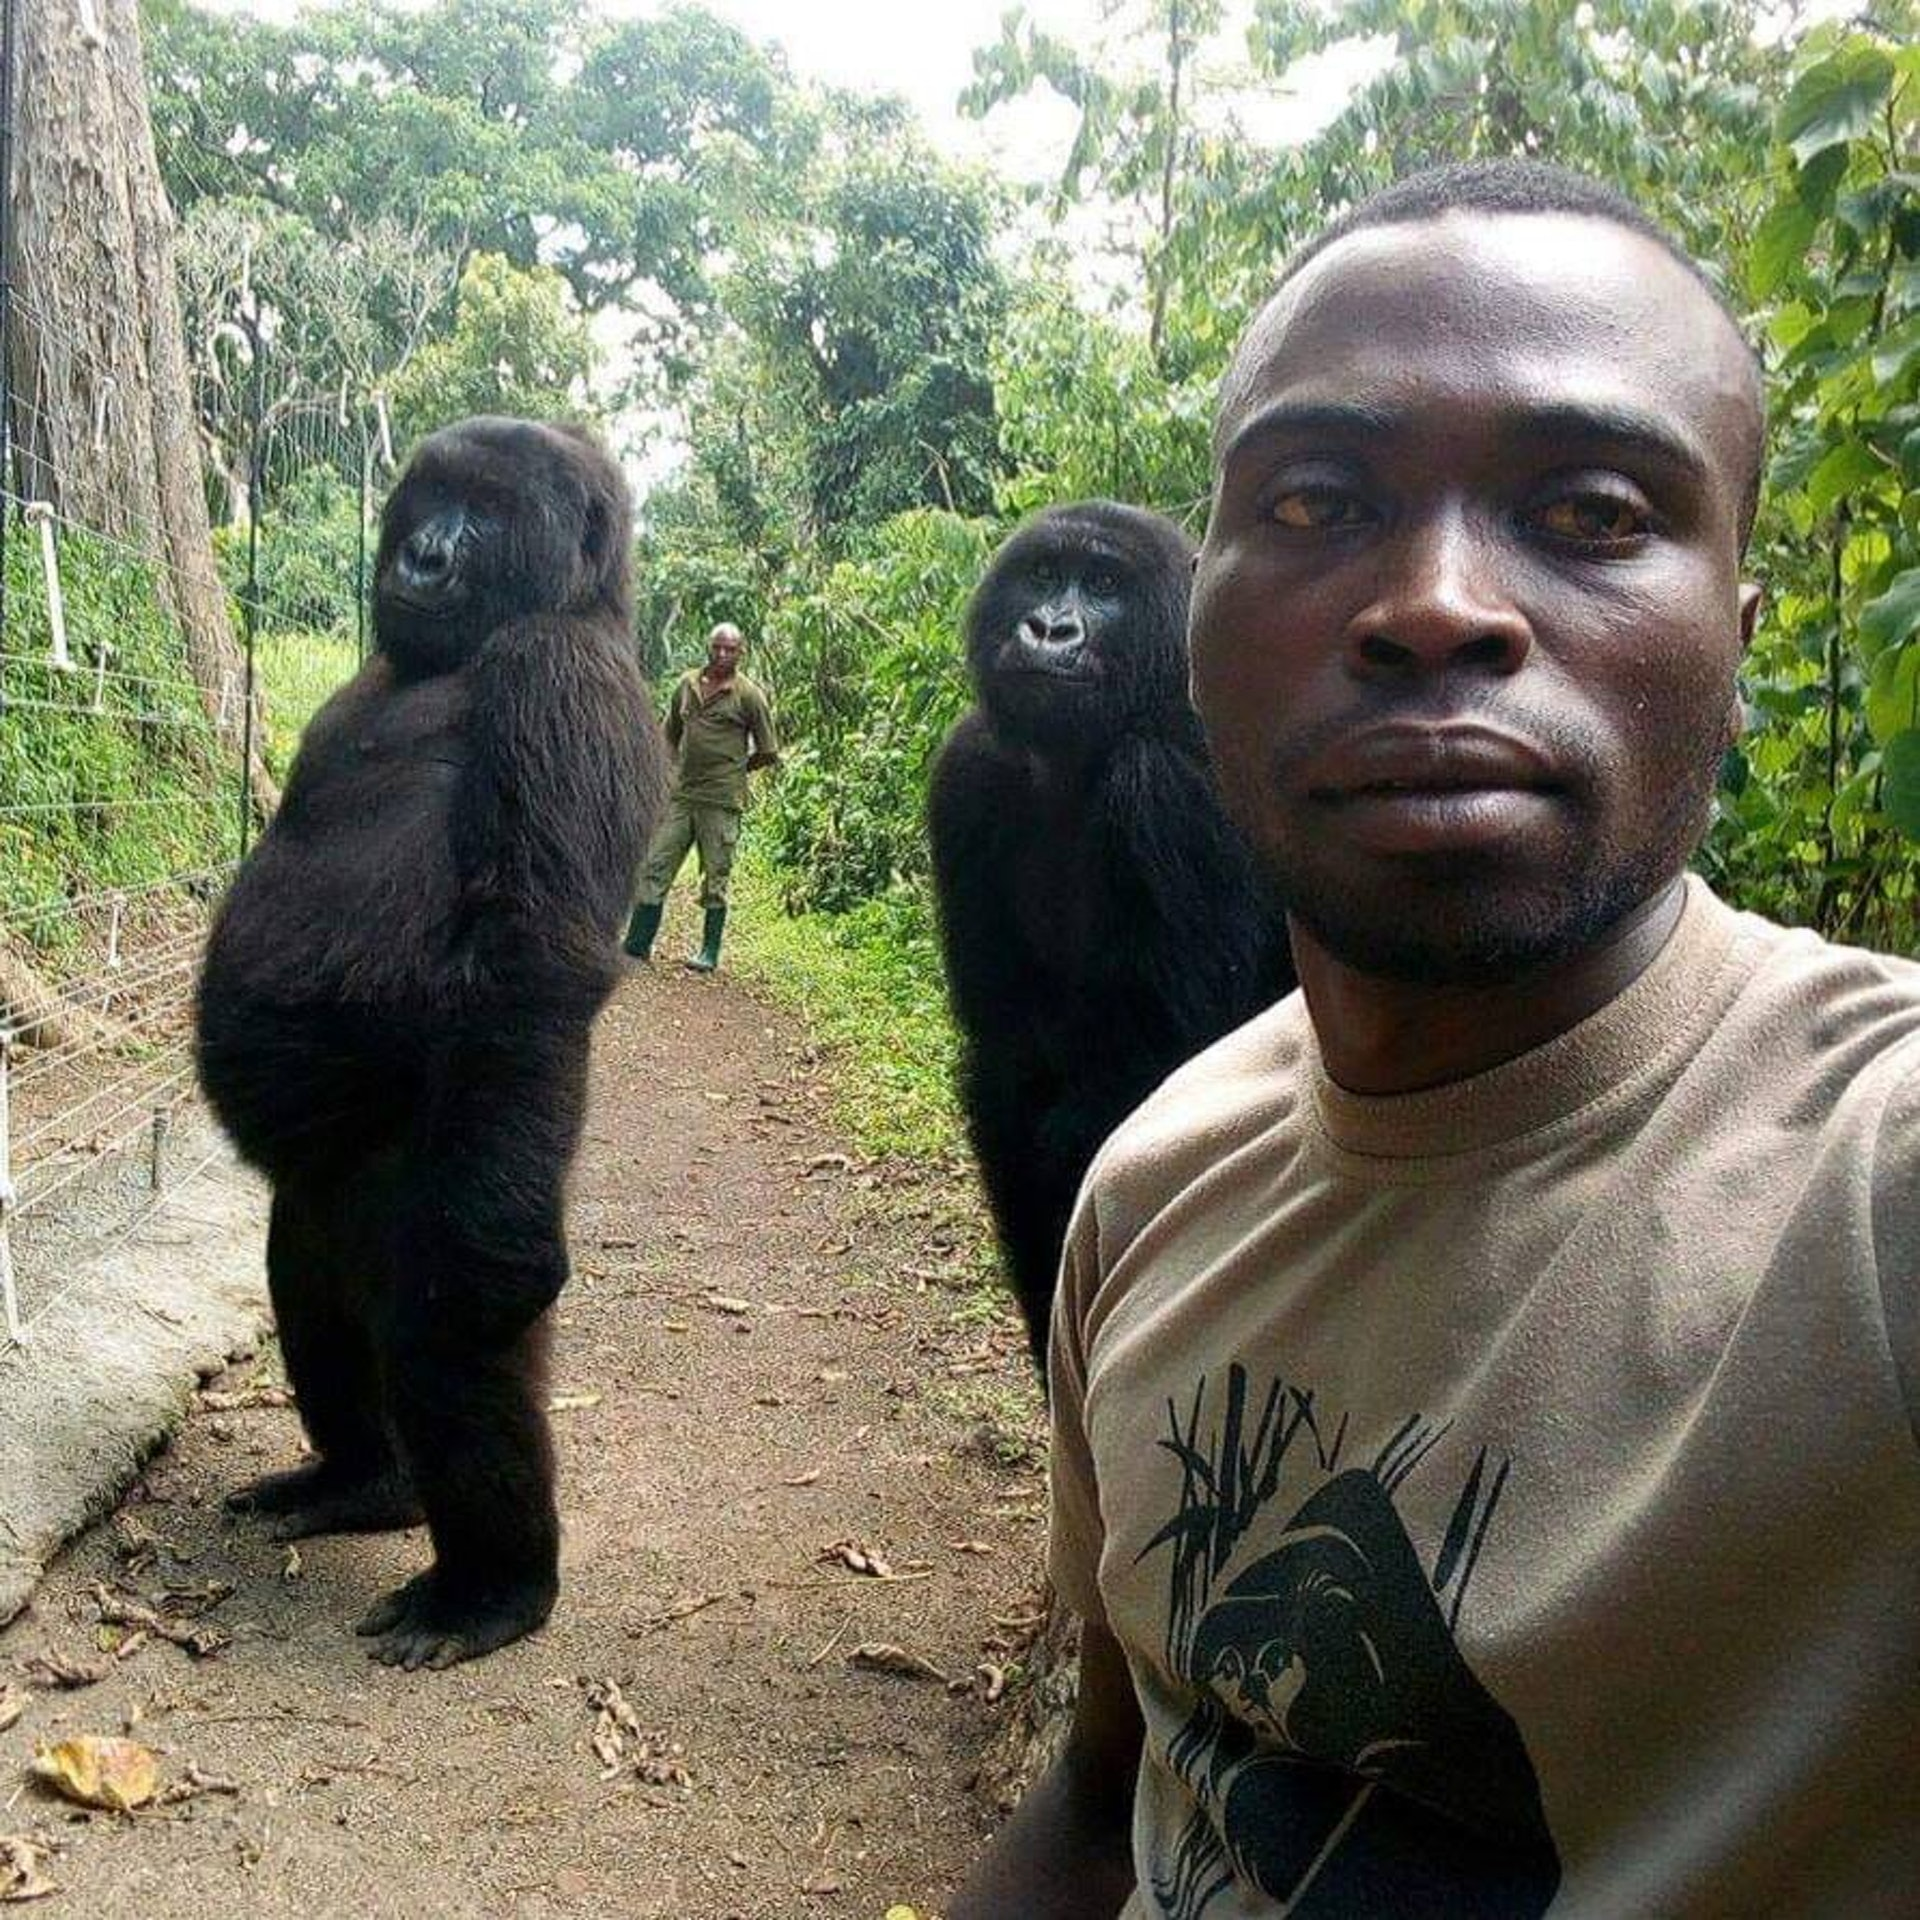 selfie with gorillas